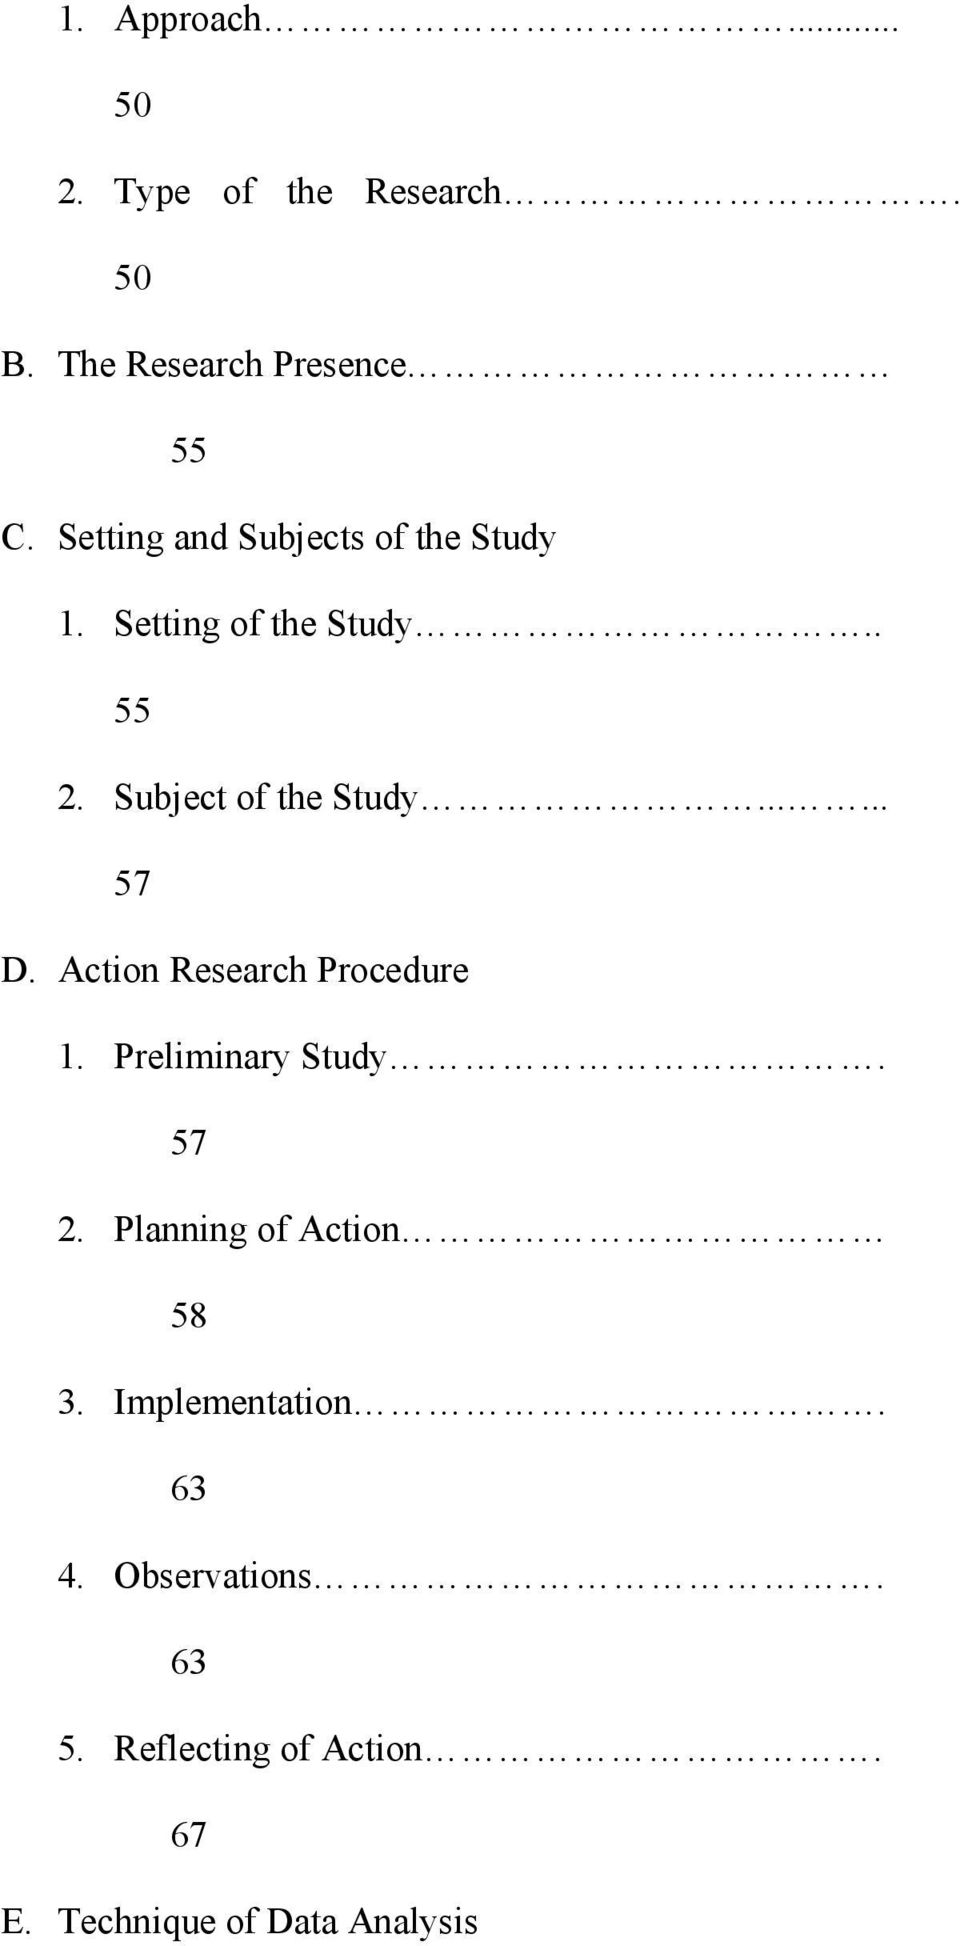 ..... 57 D. Action Research Procedure 1. Preliminary Study. 57 2.